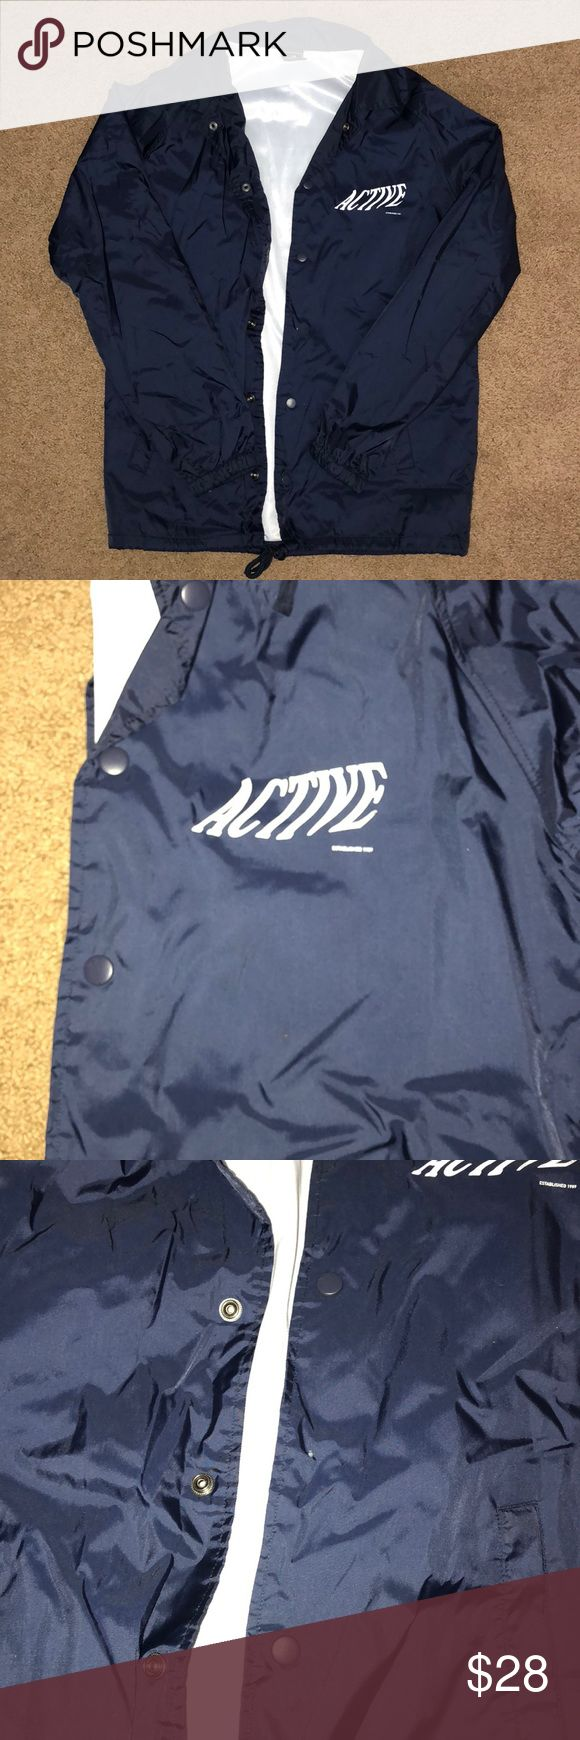 ACTIVE RIDE SHOP COACHES JACKET Windbreaker from Active Ride Shop. Brand new, Only worn about once but missing a button (as shown in picture). I received it like that from their online store, but can easily be replaced with a new button. Excellent condition other than that! Dark blue color, with collar, and two front pockets. Active Ride Shop Jackets & Coats Windbreakers